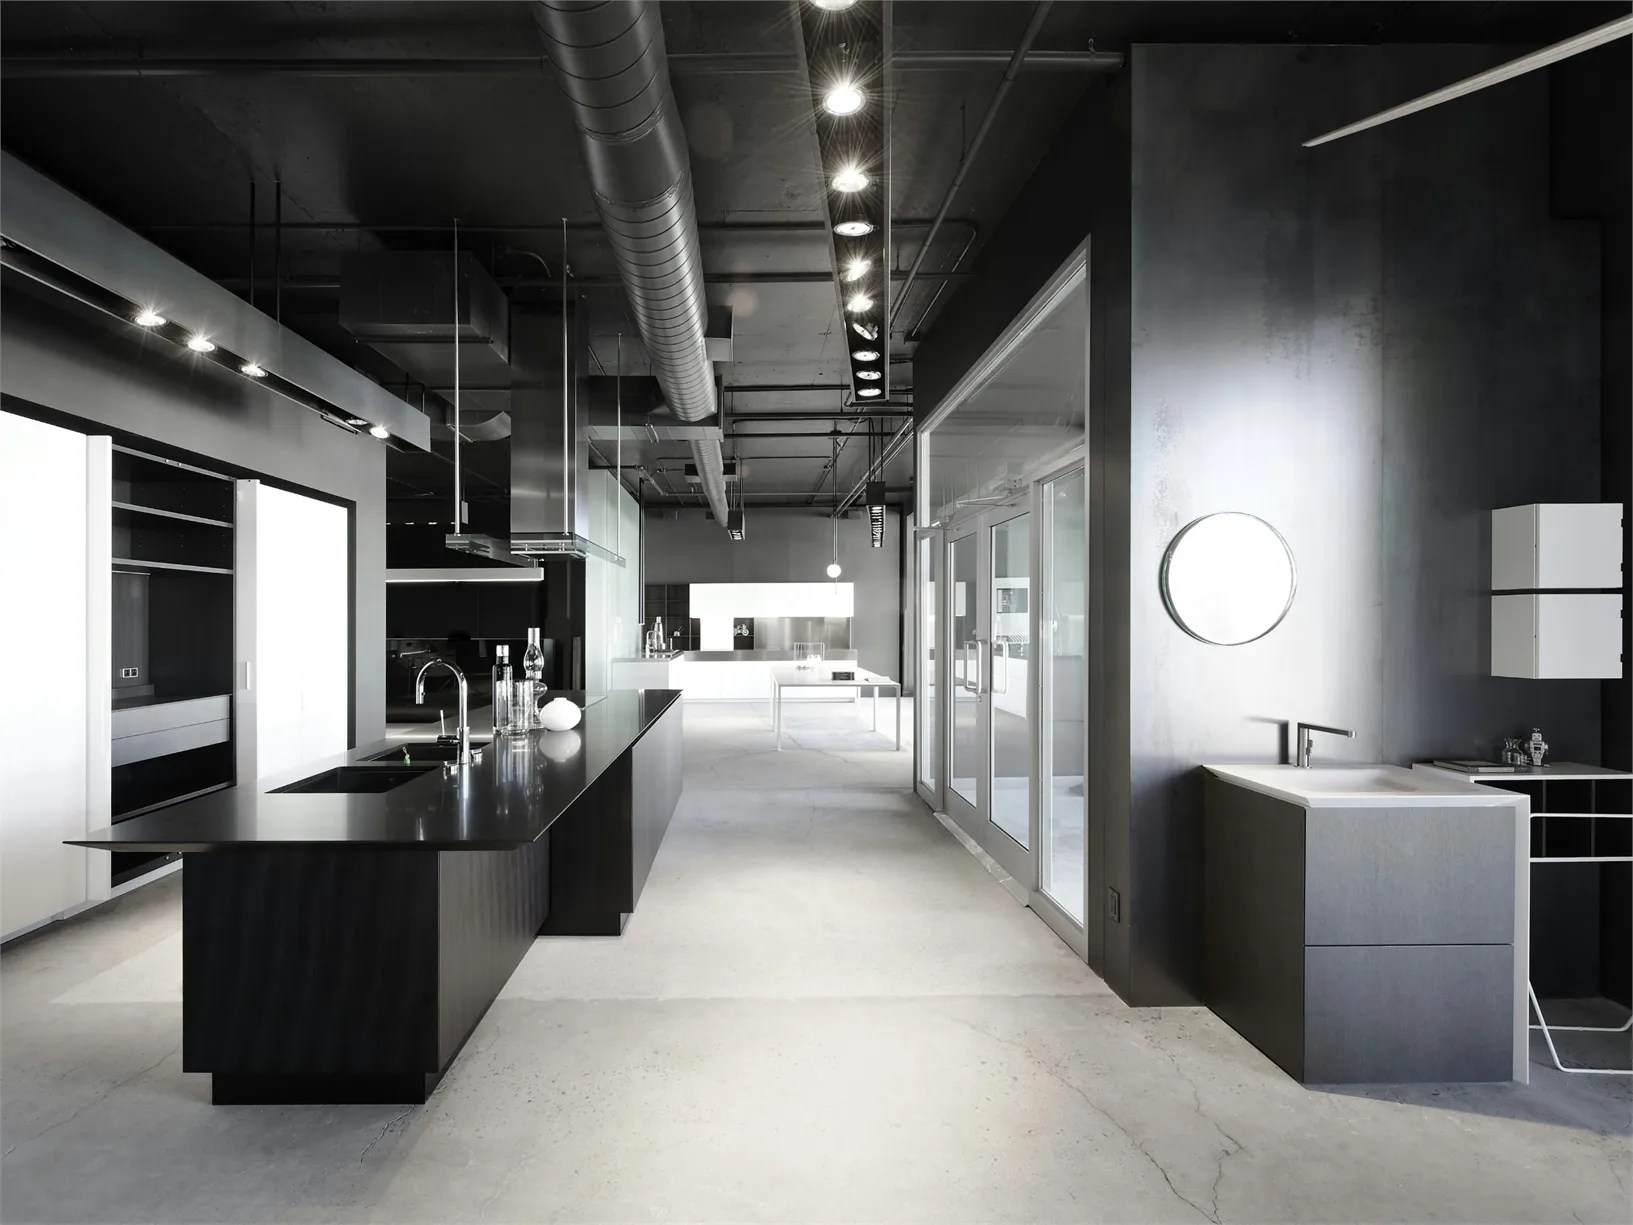 The new exhibition space Boffi in Montreal